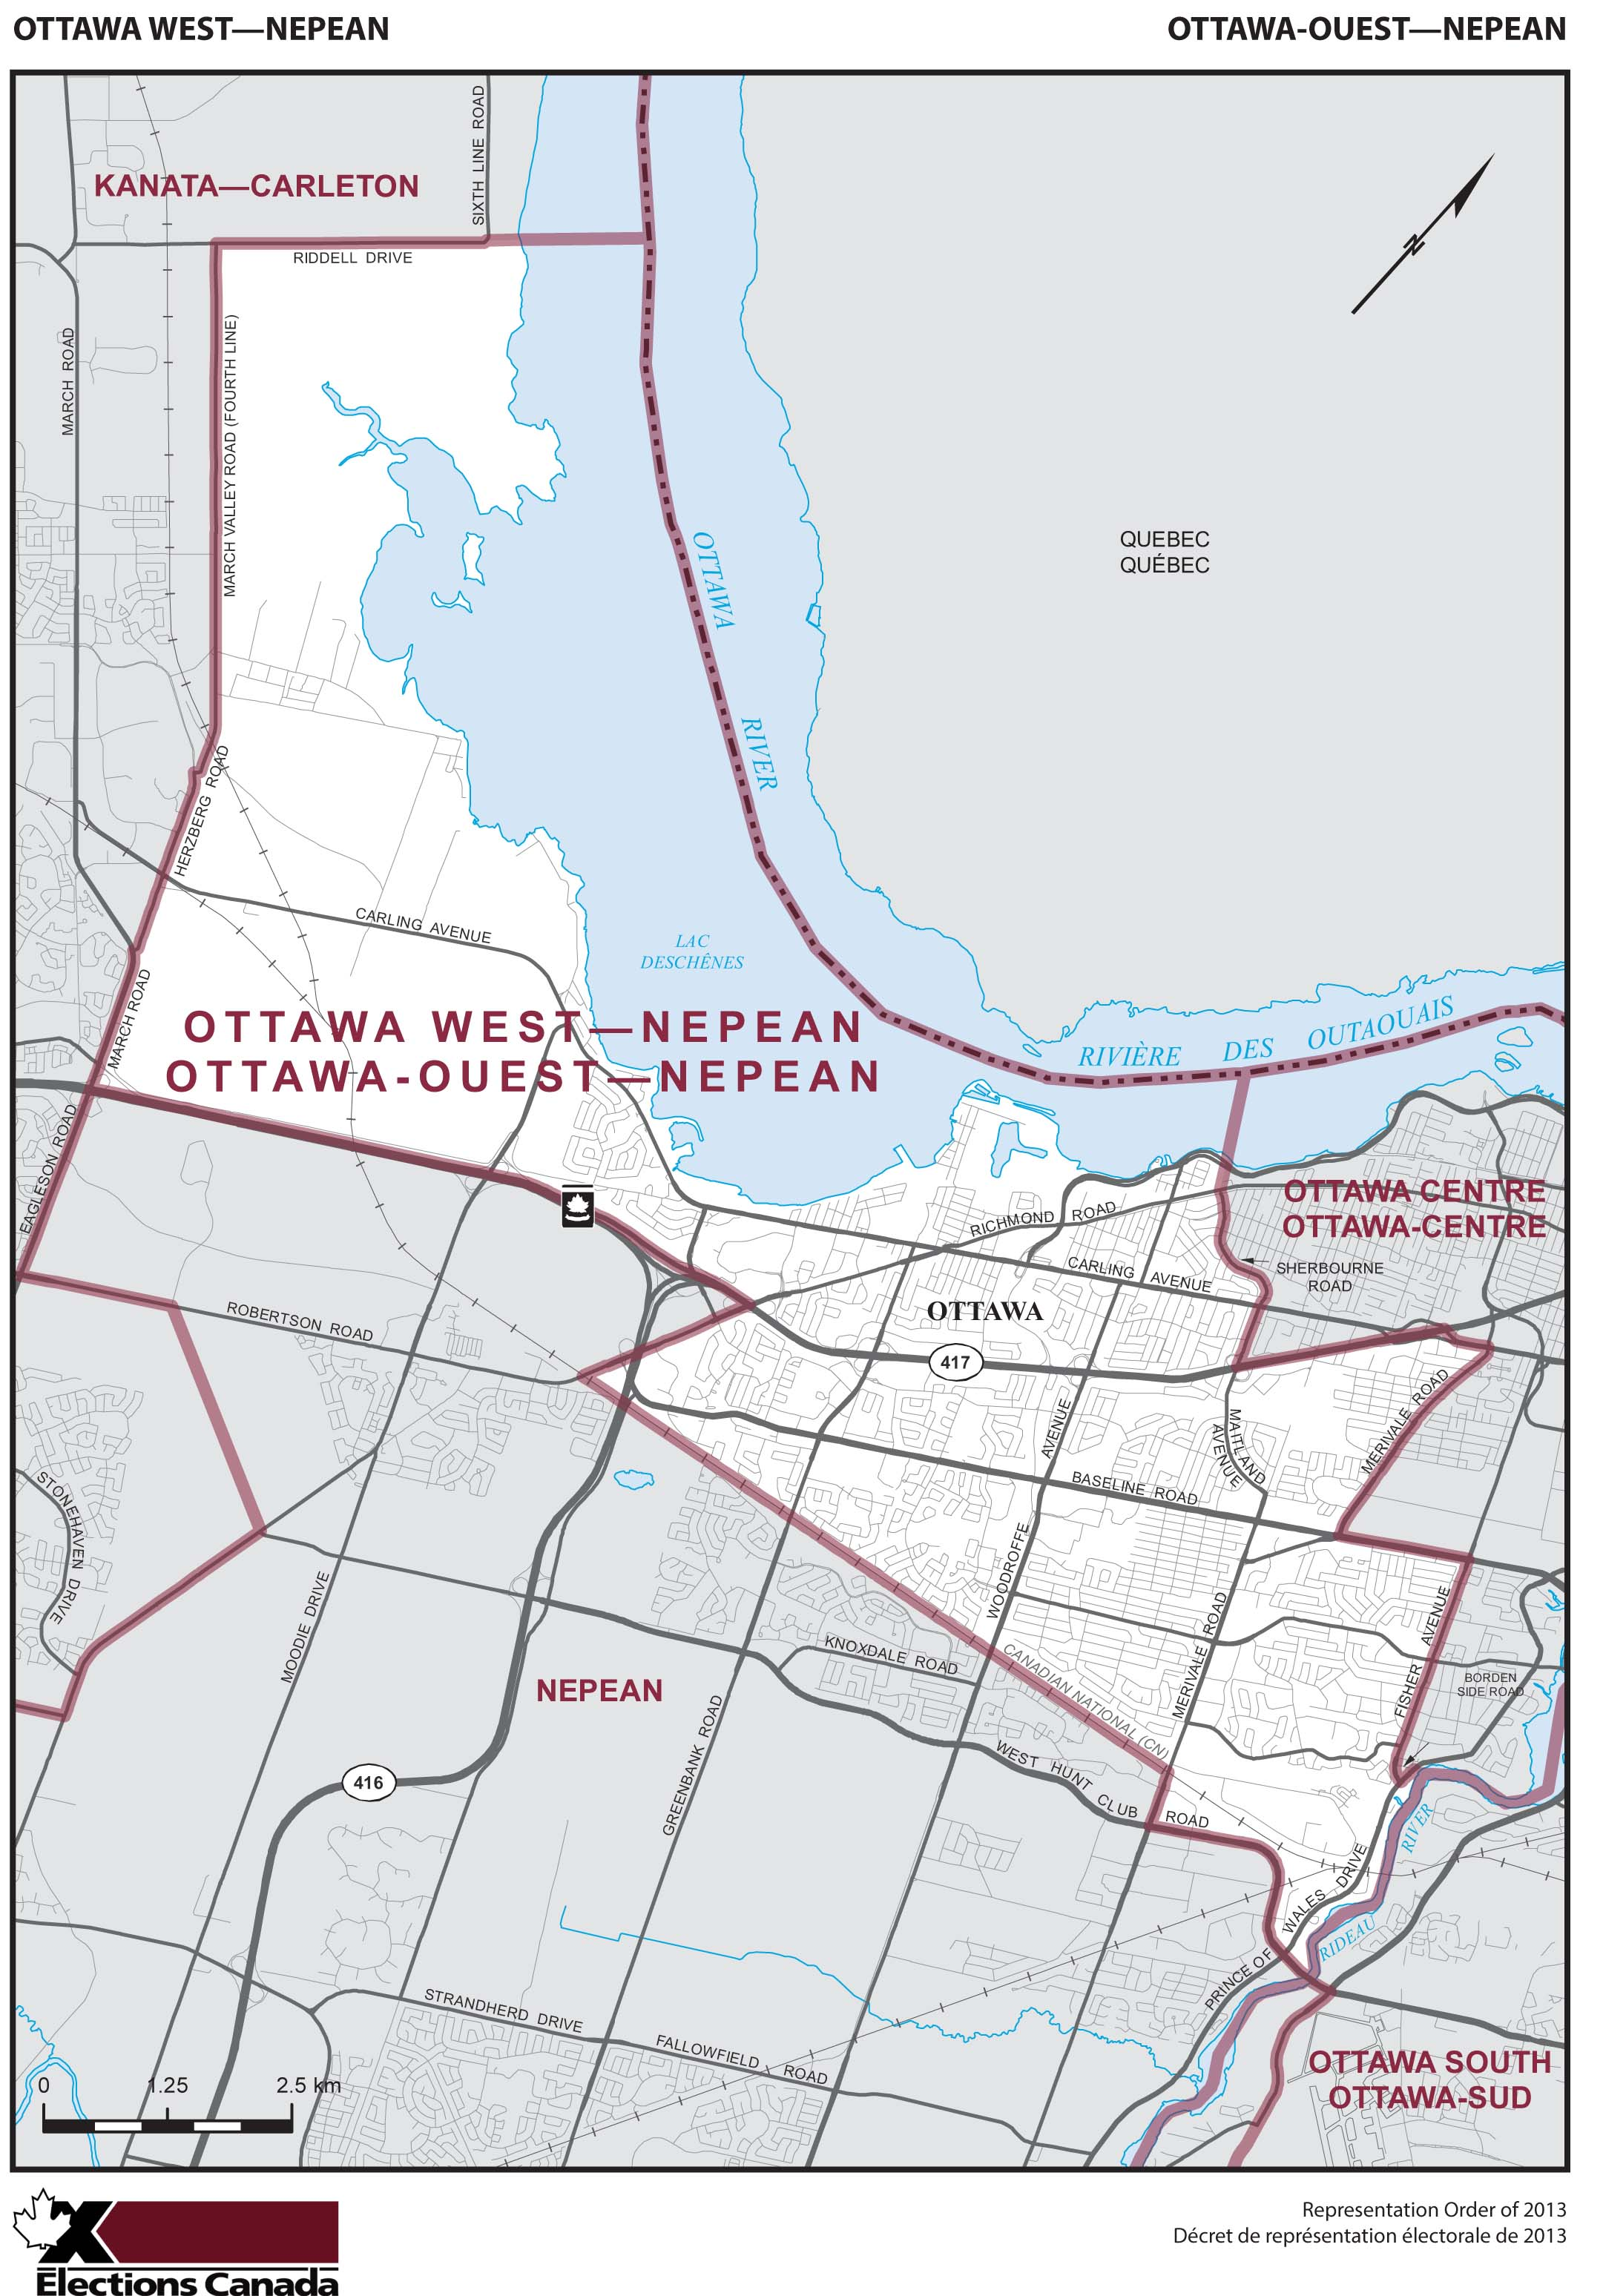 Map: Ottawa West--Nepean, Federal electoral district, 2013 Representation Order (in white), Ontario